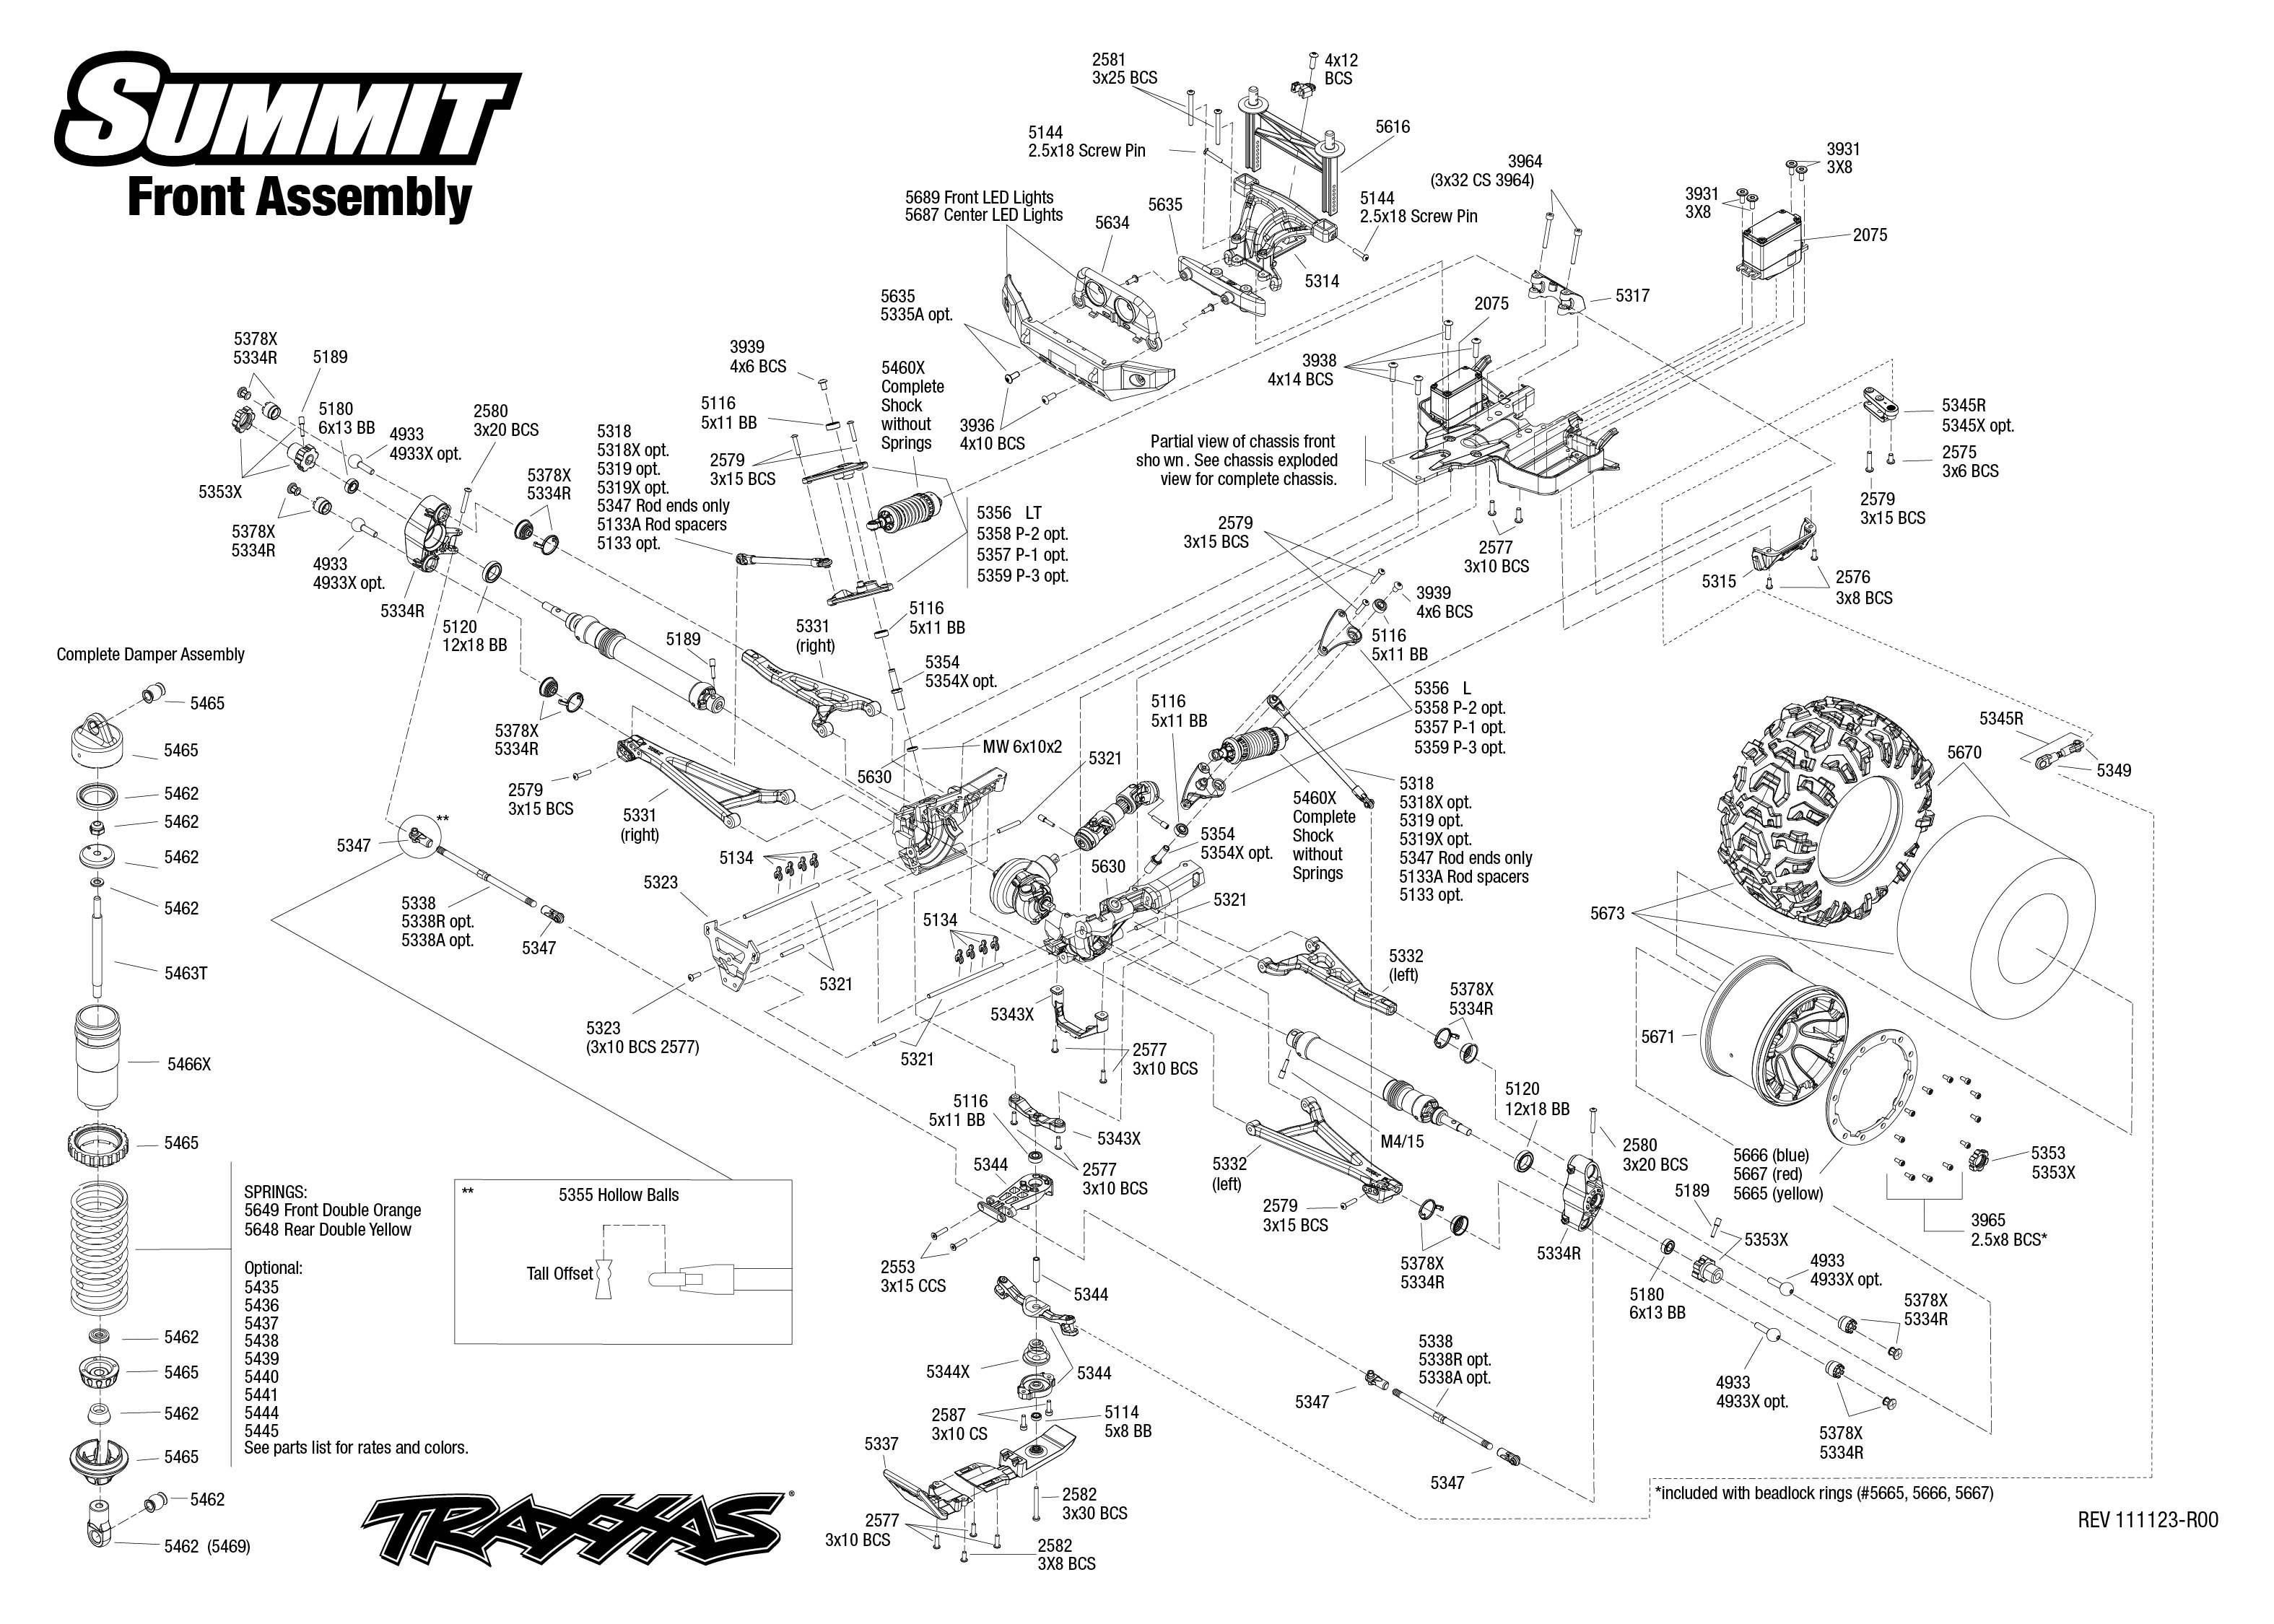 Traxxas Summit Diagram Electrical Wiring Stampede Vxl Parts Monster Jam Replicas 3602 Exploded View 1 10 Front Part Astra Rh Astramodel Cz